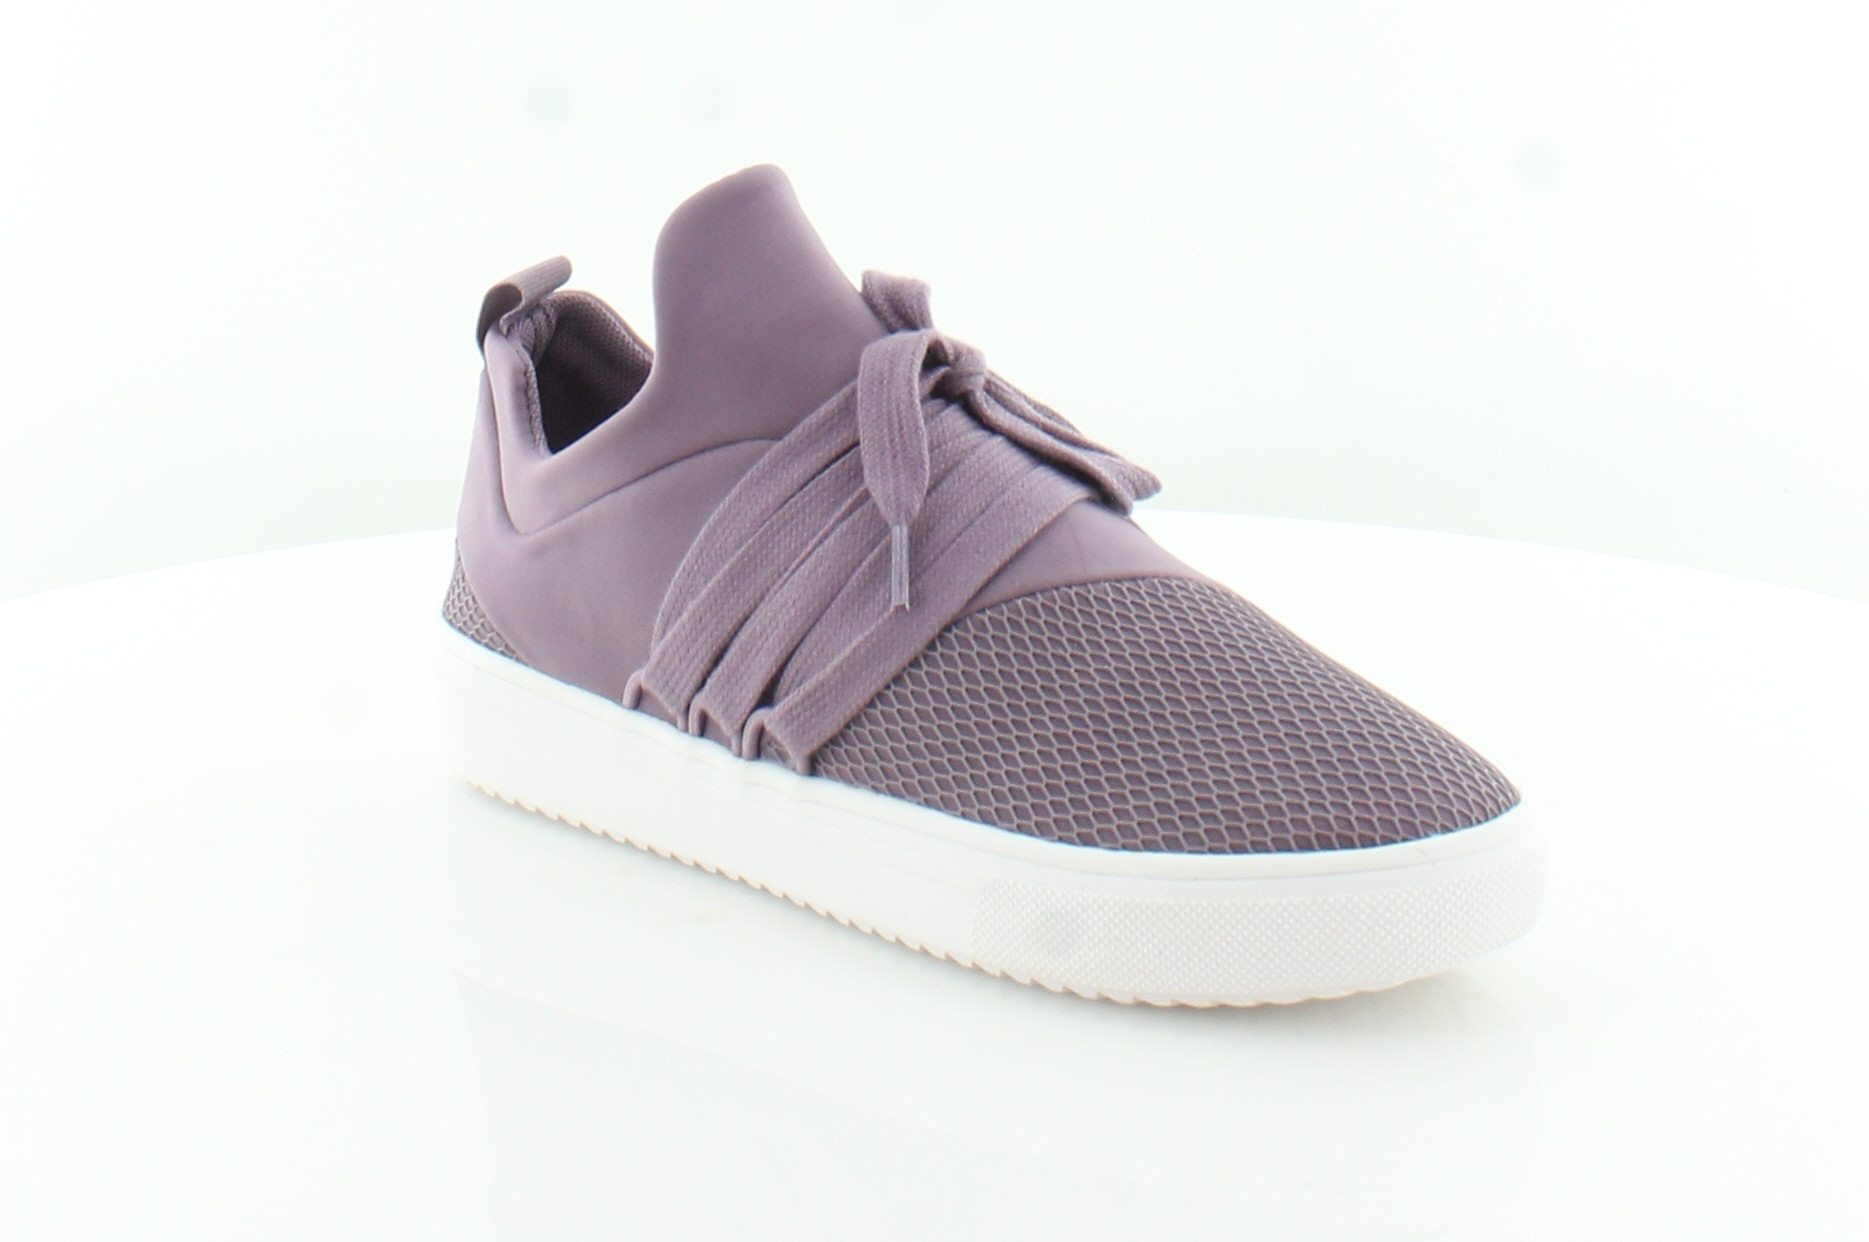 748ffb3cc41 Steve Madden Lancer Purple Womens Shoes Size 6.5 M Fashion Sneakers MSRP   69.98